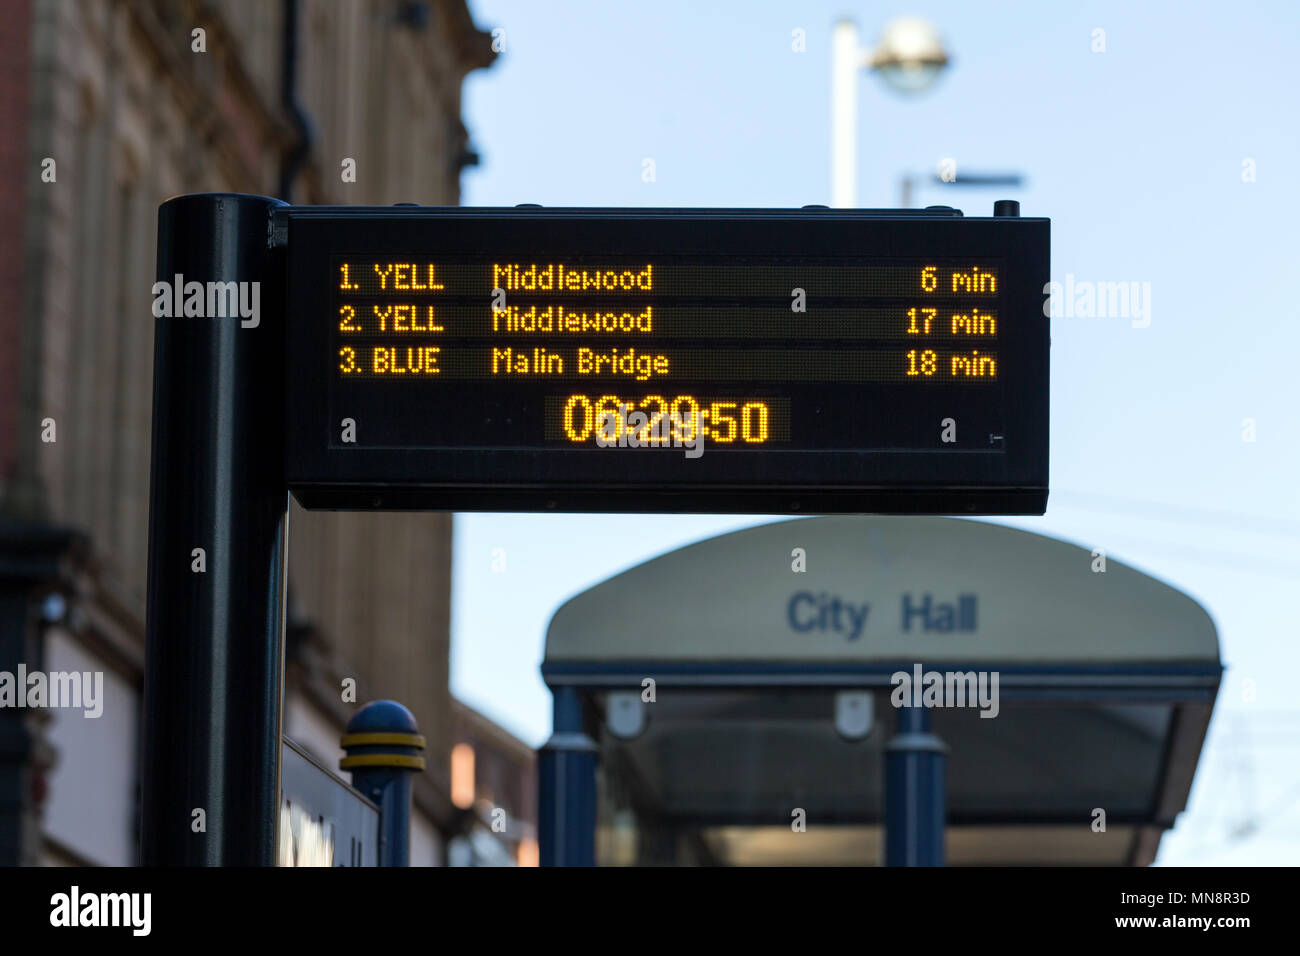 A digital display at a tram stop in Sheffield, South Yorkshire, UK. - Stock Image